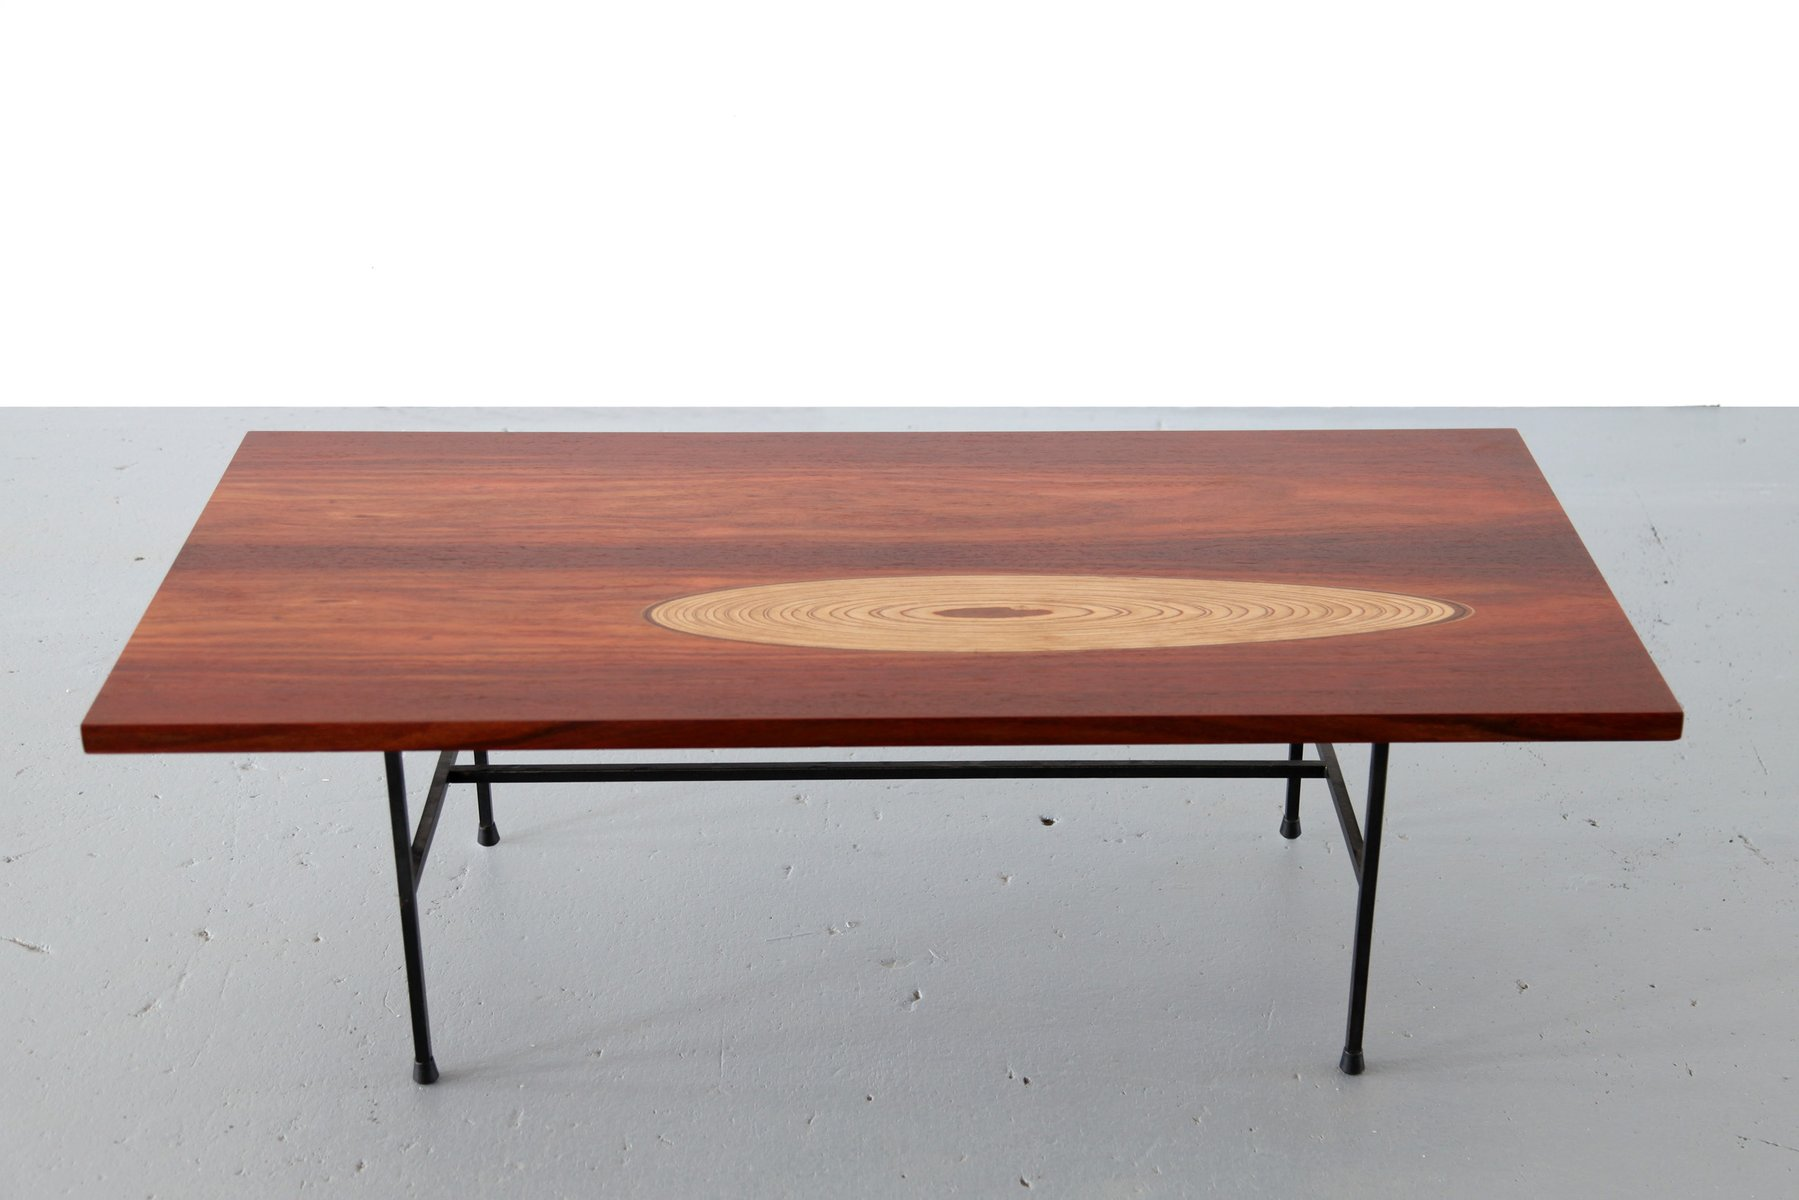 Finnish Coffee Table By Tapio Wirkkala For Asko 1950s For Sale At Pamono